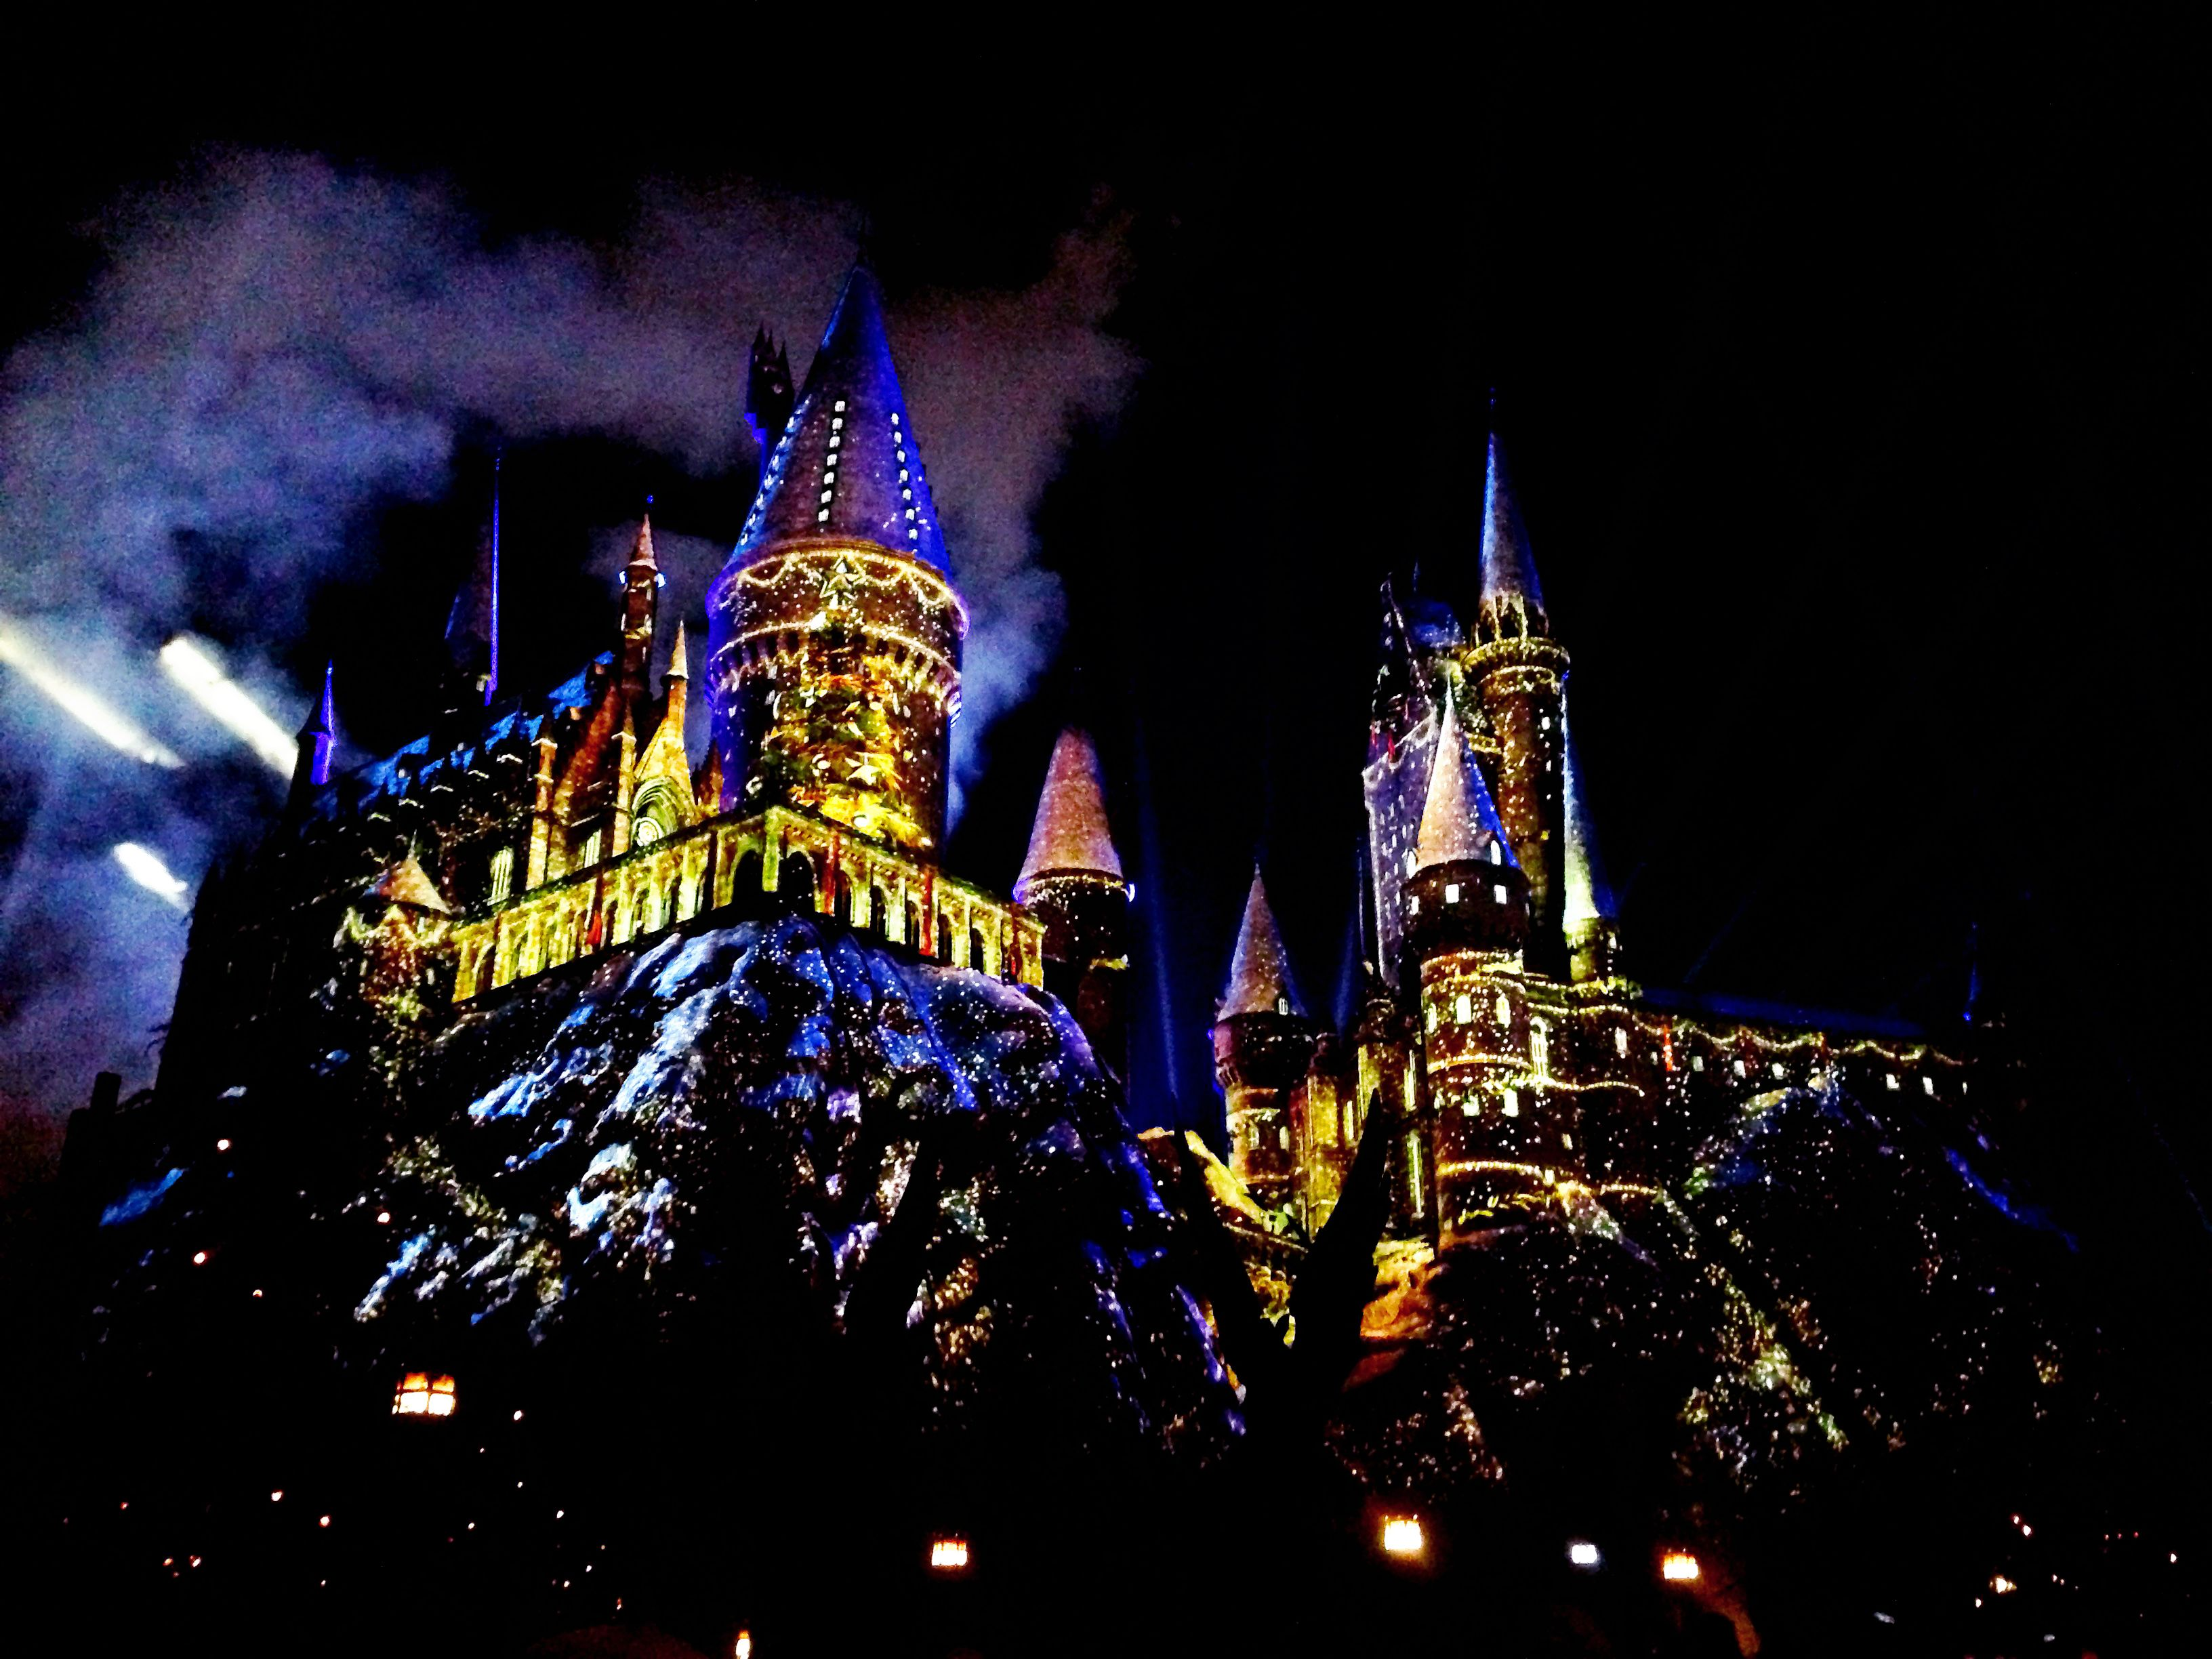 Cosplaying At The Wizarding World Of Harry Potter Wizarding World Of Harry Potter Harry Potter Travel Bucket List Wizarding World